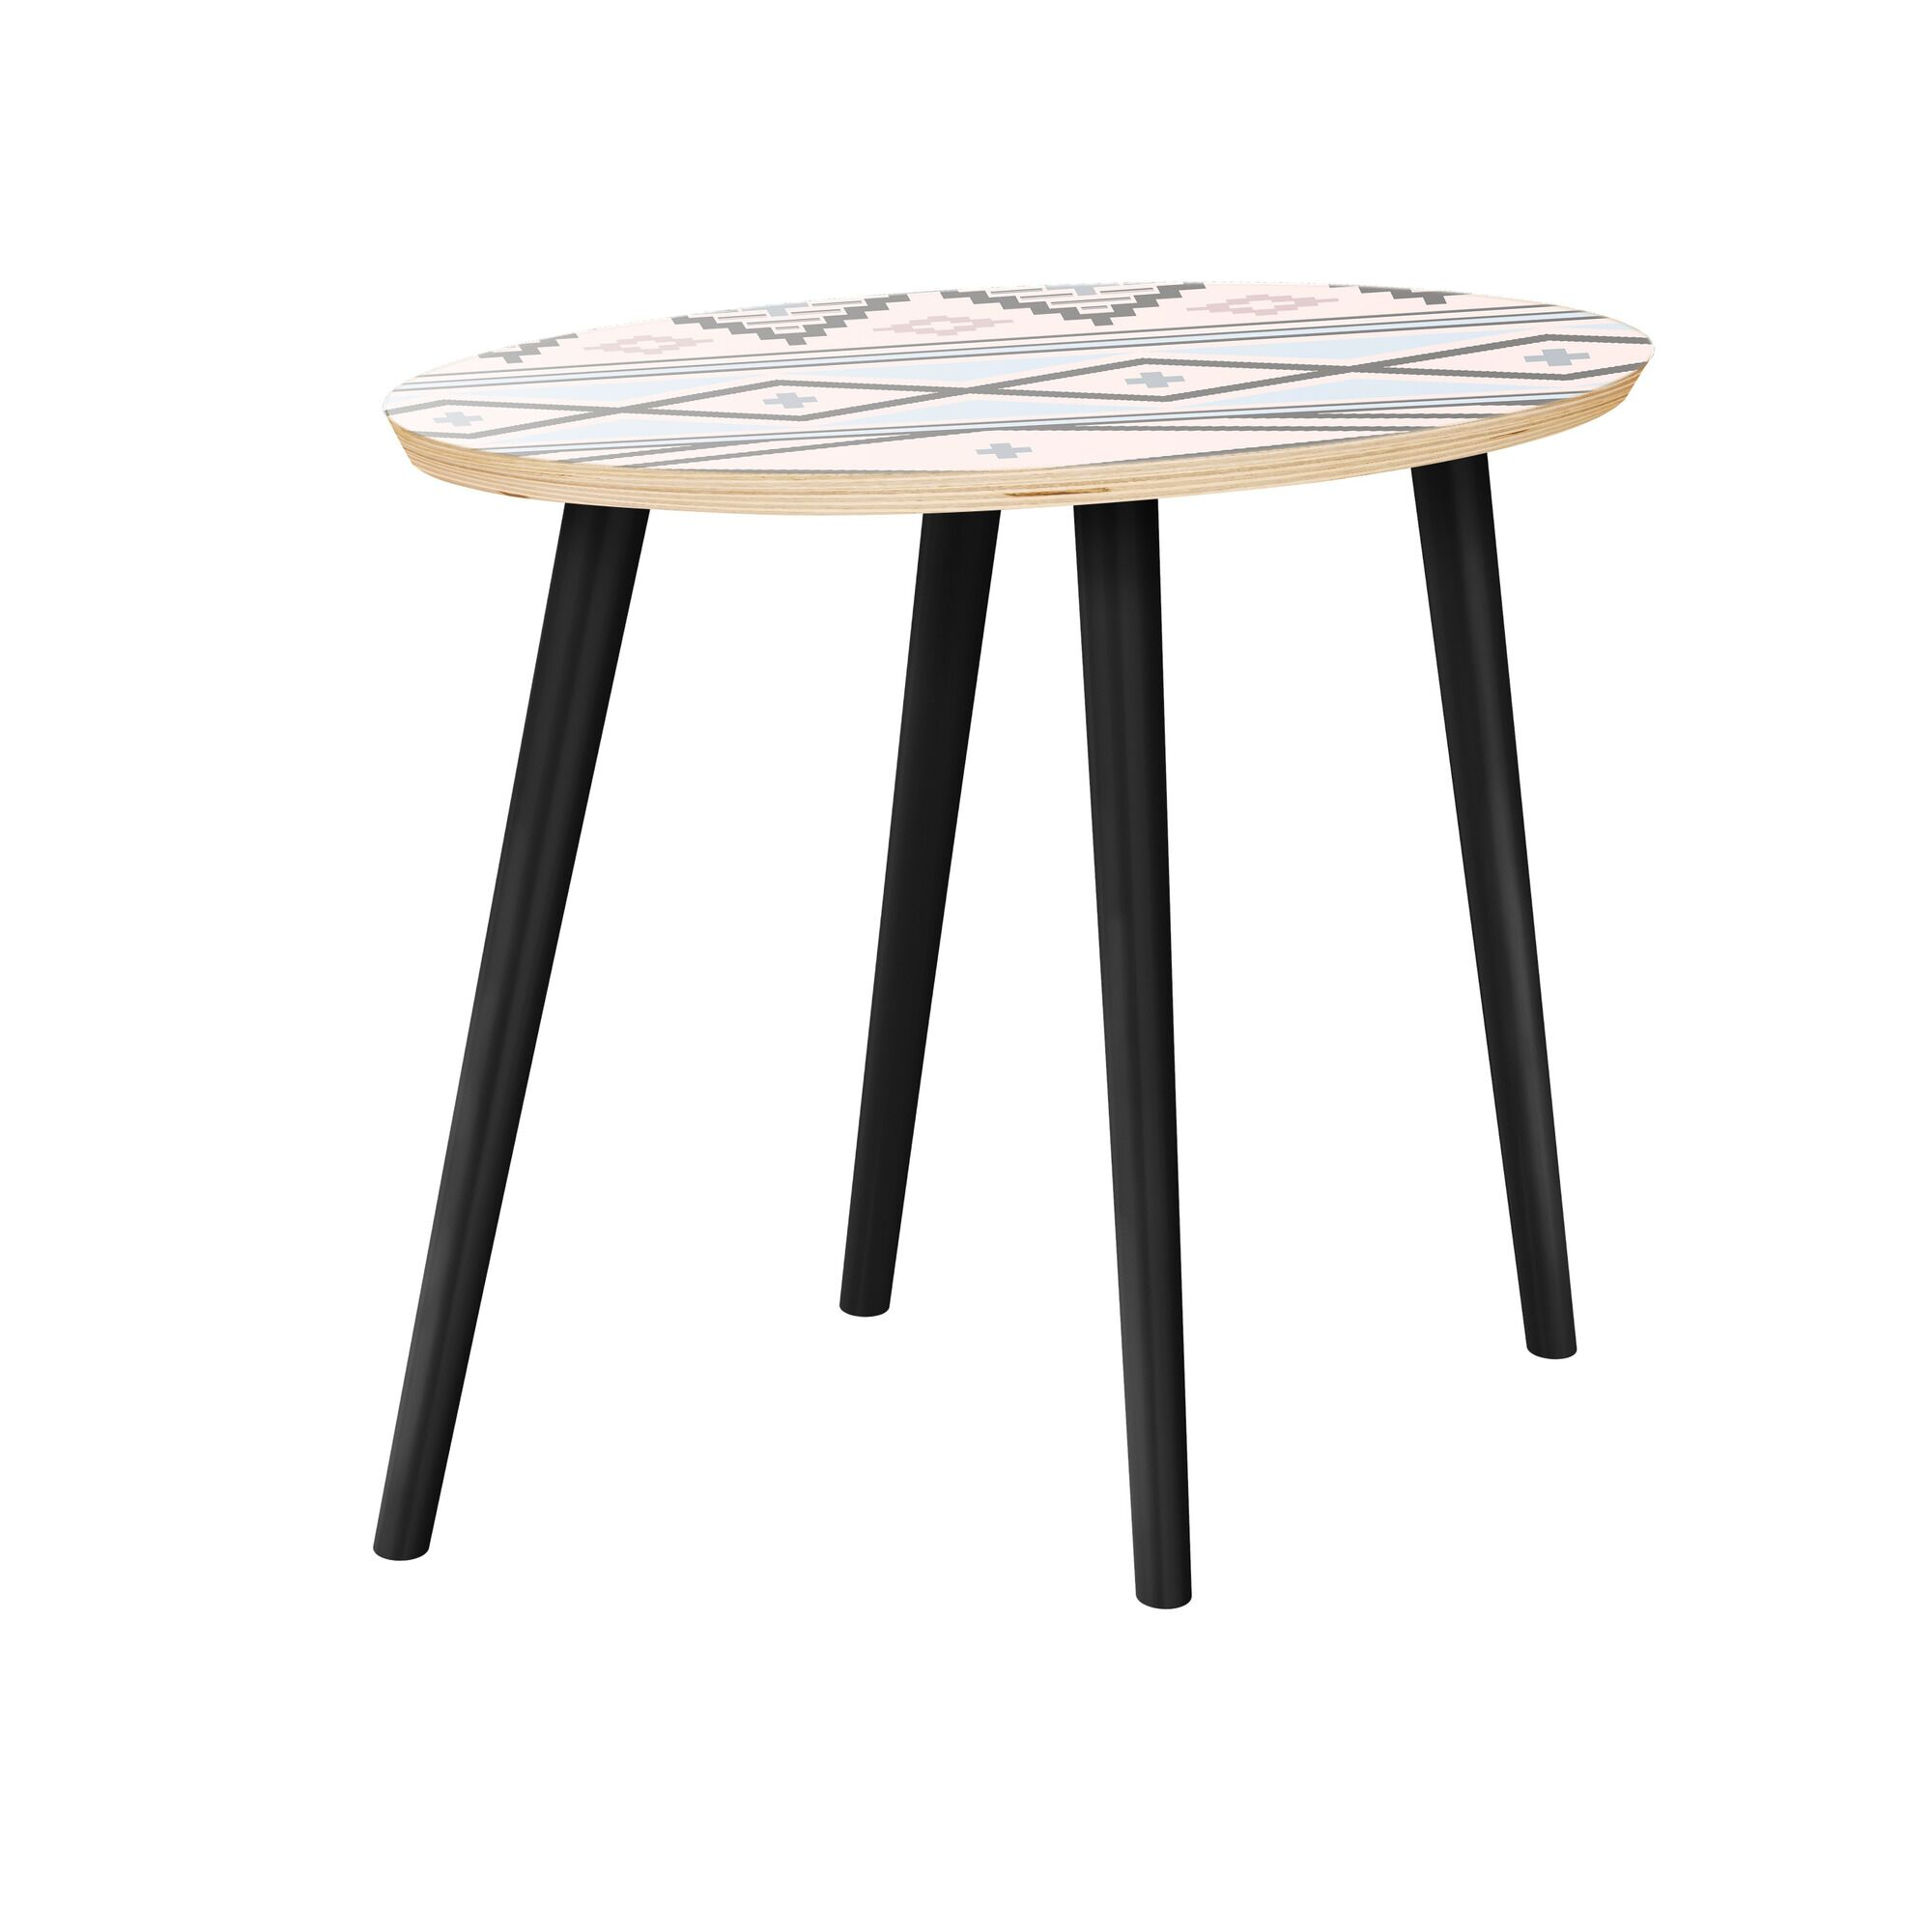 Holdsworth End Table Table Top Boarder Color: Natural, Table Base Color: Black, Table Top Color: Red